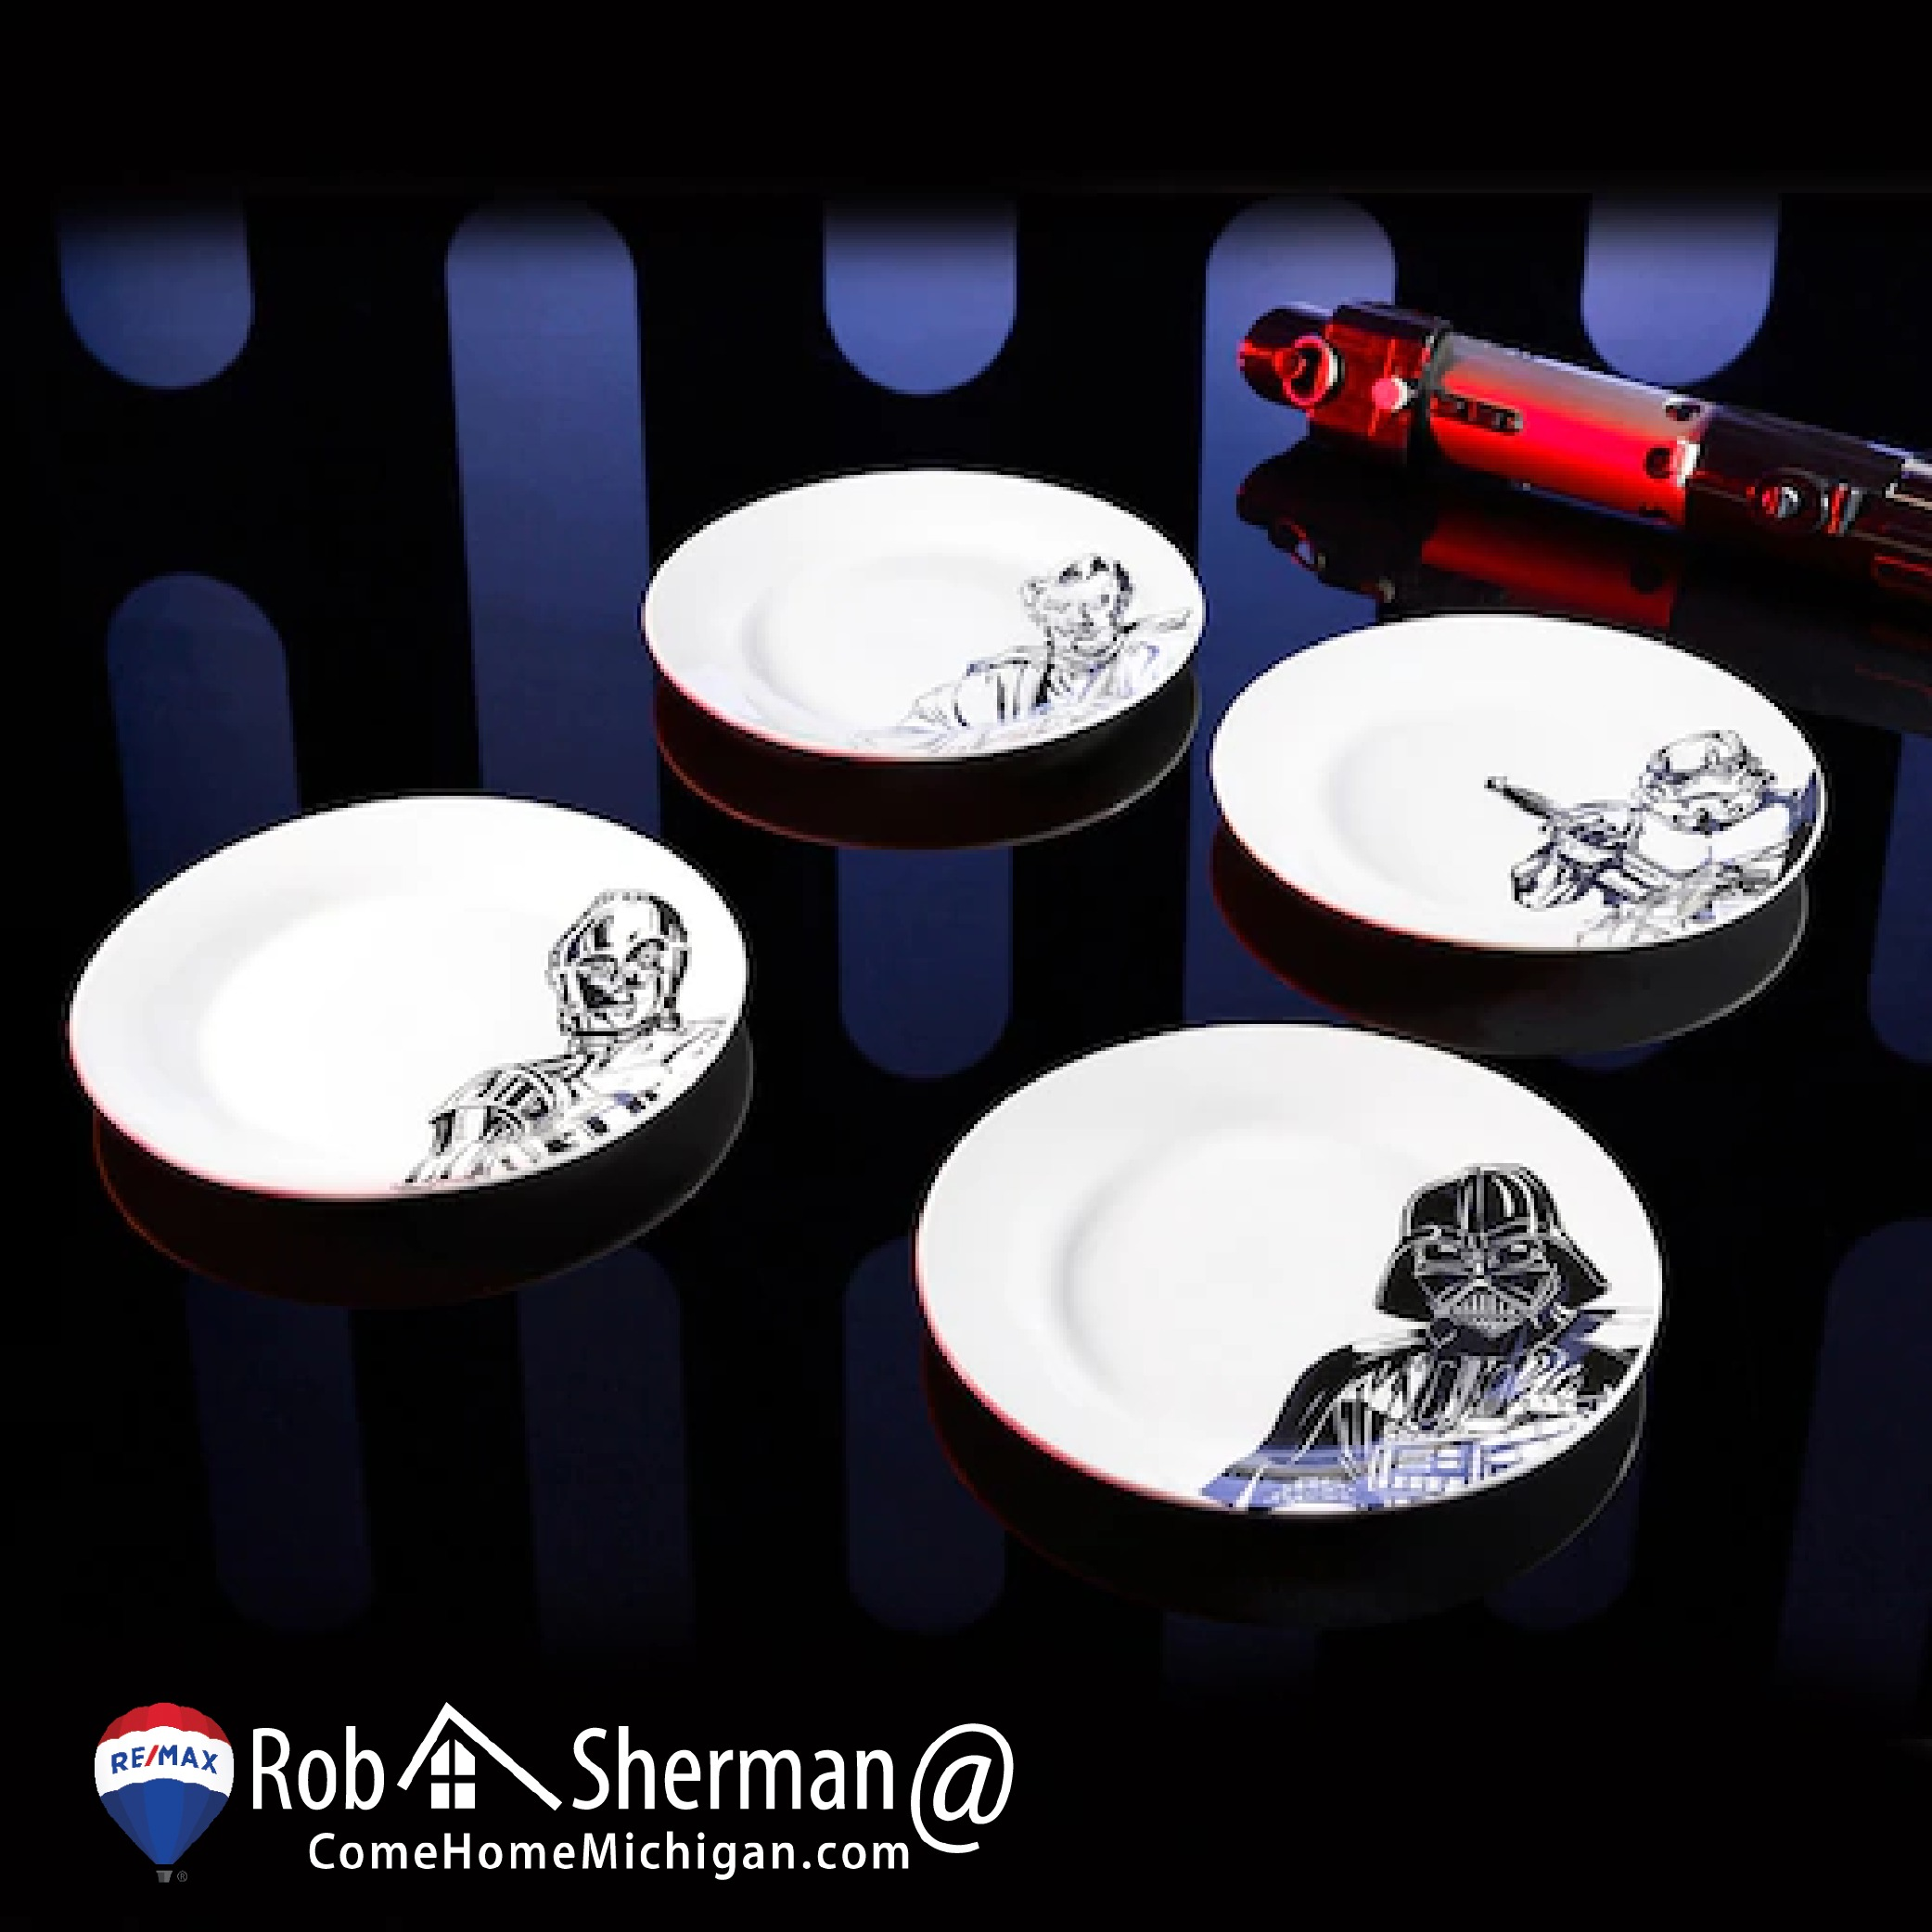 Kohl's Sells Sweet Star Wars plates and they Rock!